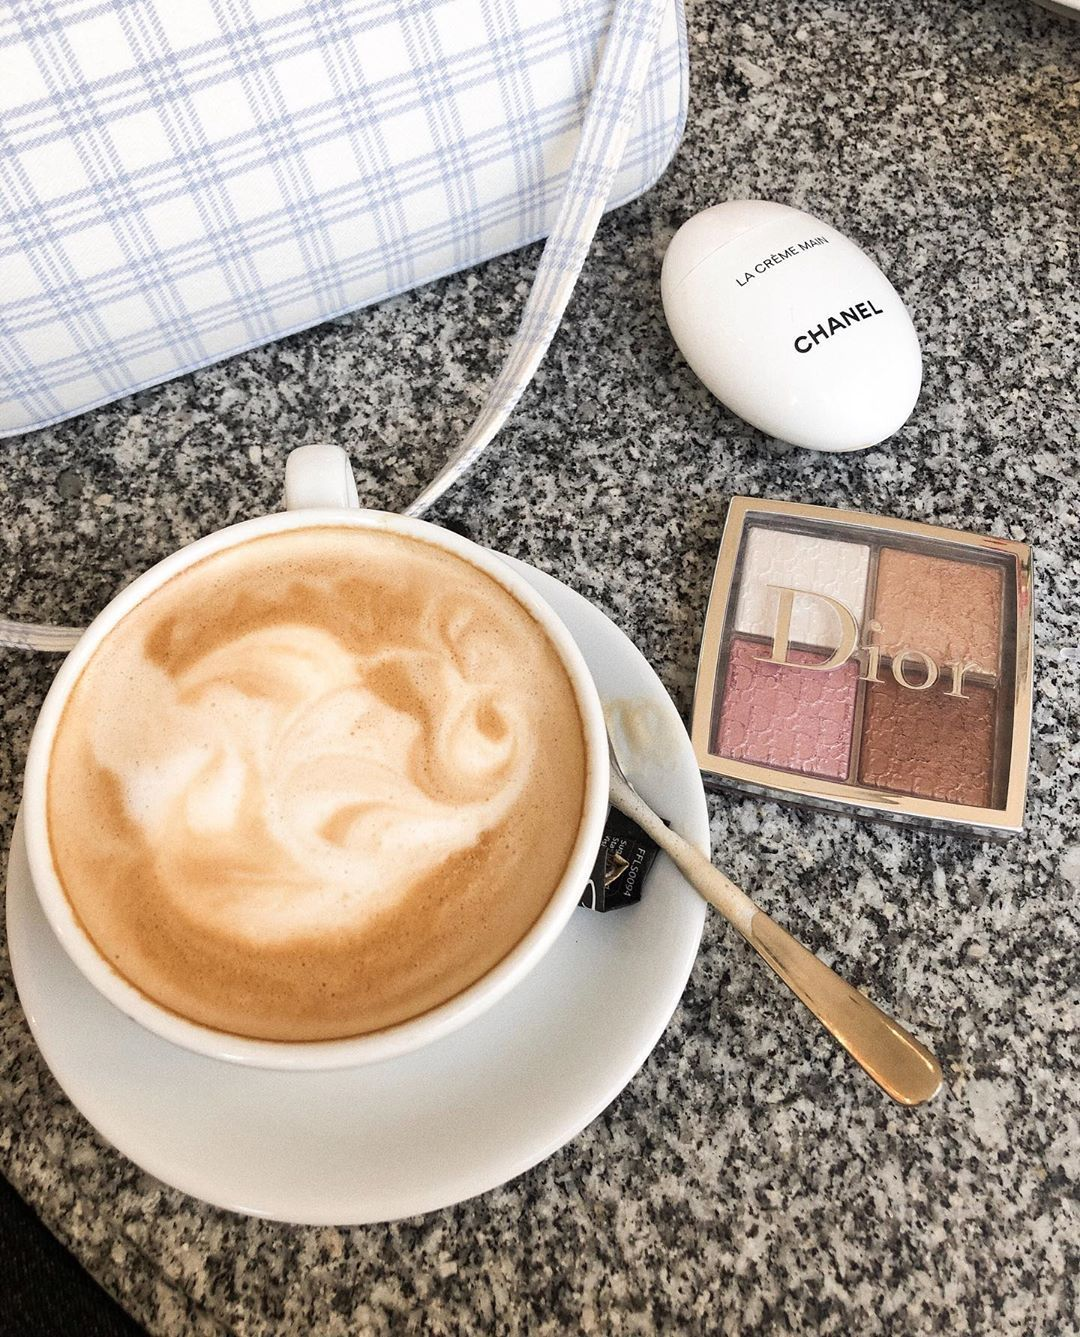 Lauren Crowe V Instagram Dreamy Dior Diorbackstage Diorbeauty Diormakeup Chanel Chanelbeauty Chanelhandcrea In 2020 Hand Cream Morning Coffee Dior Beauty